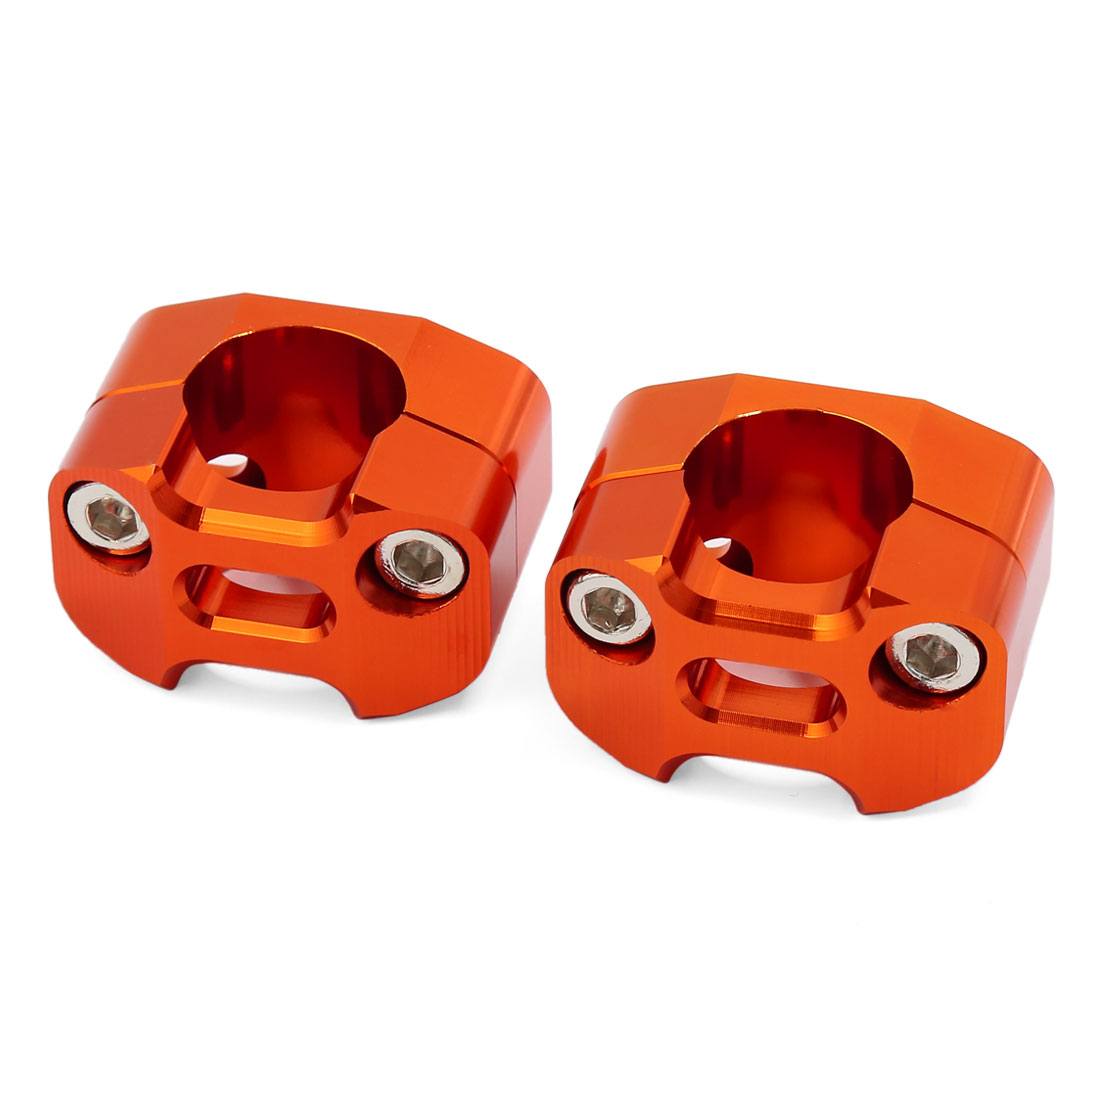 Motorcycle Orange CNC Aluminum Alloy 28mm Fat Handlebar Riser Clamp Adapter 2pcs